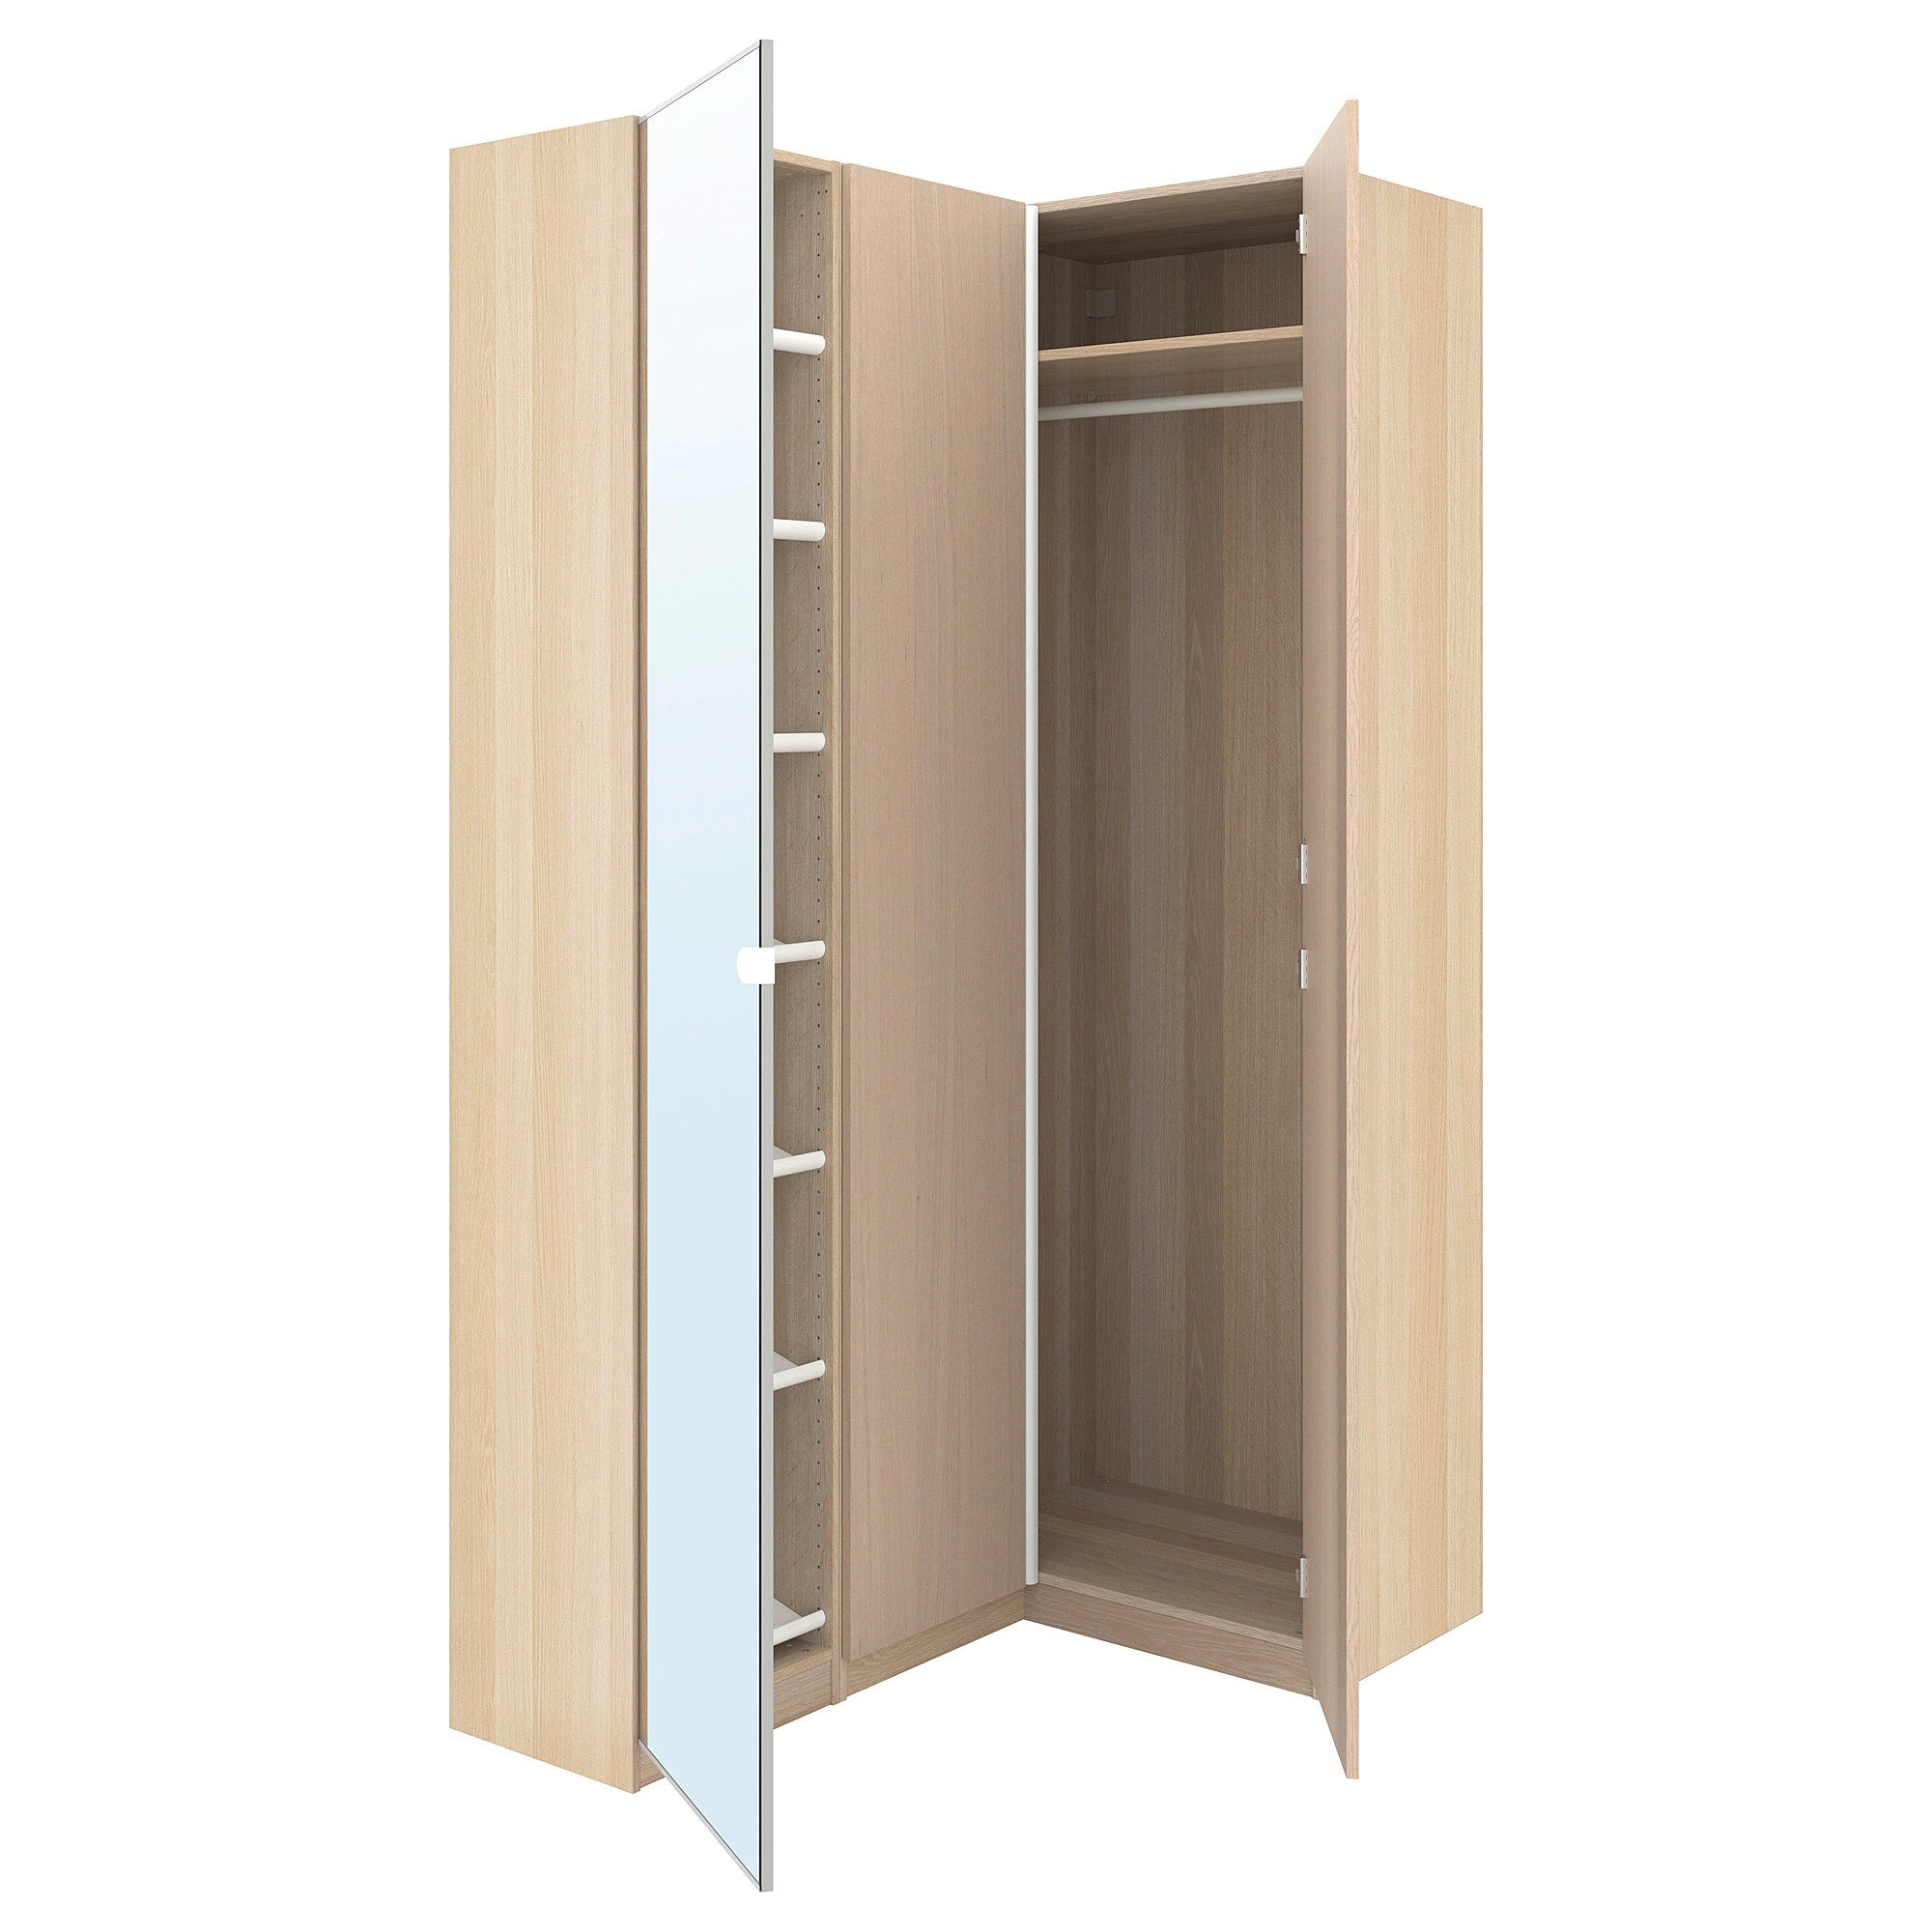 Corner Wardrobe Pax Corner Wardrobe White Stained Oak Effect Nexus Vikedal